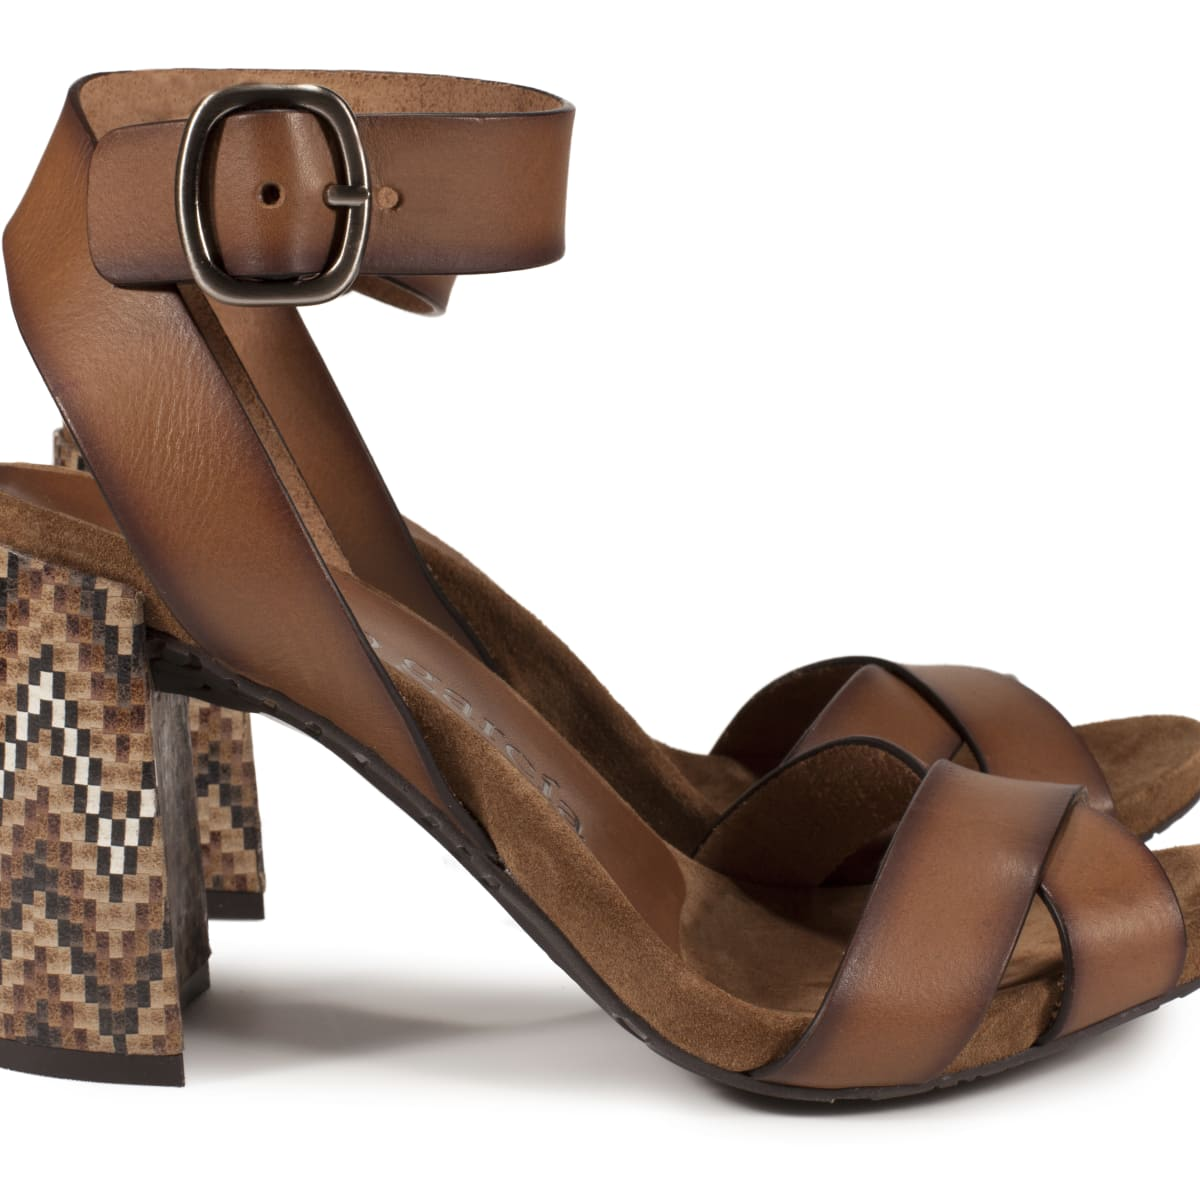 Pedro Garcia Cigar wedge sandal at Nordstrom